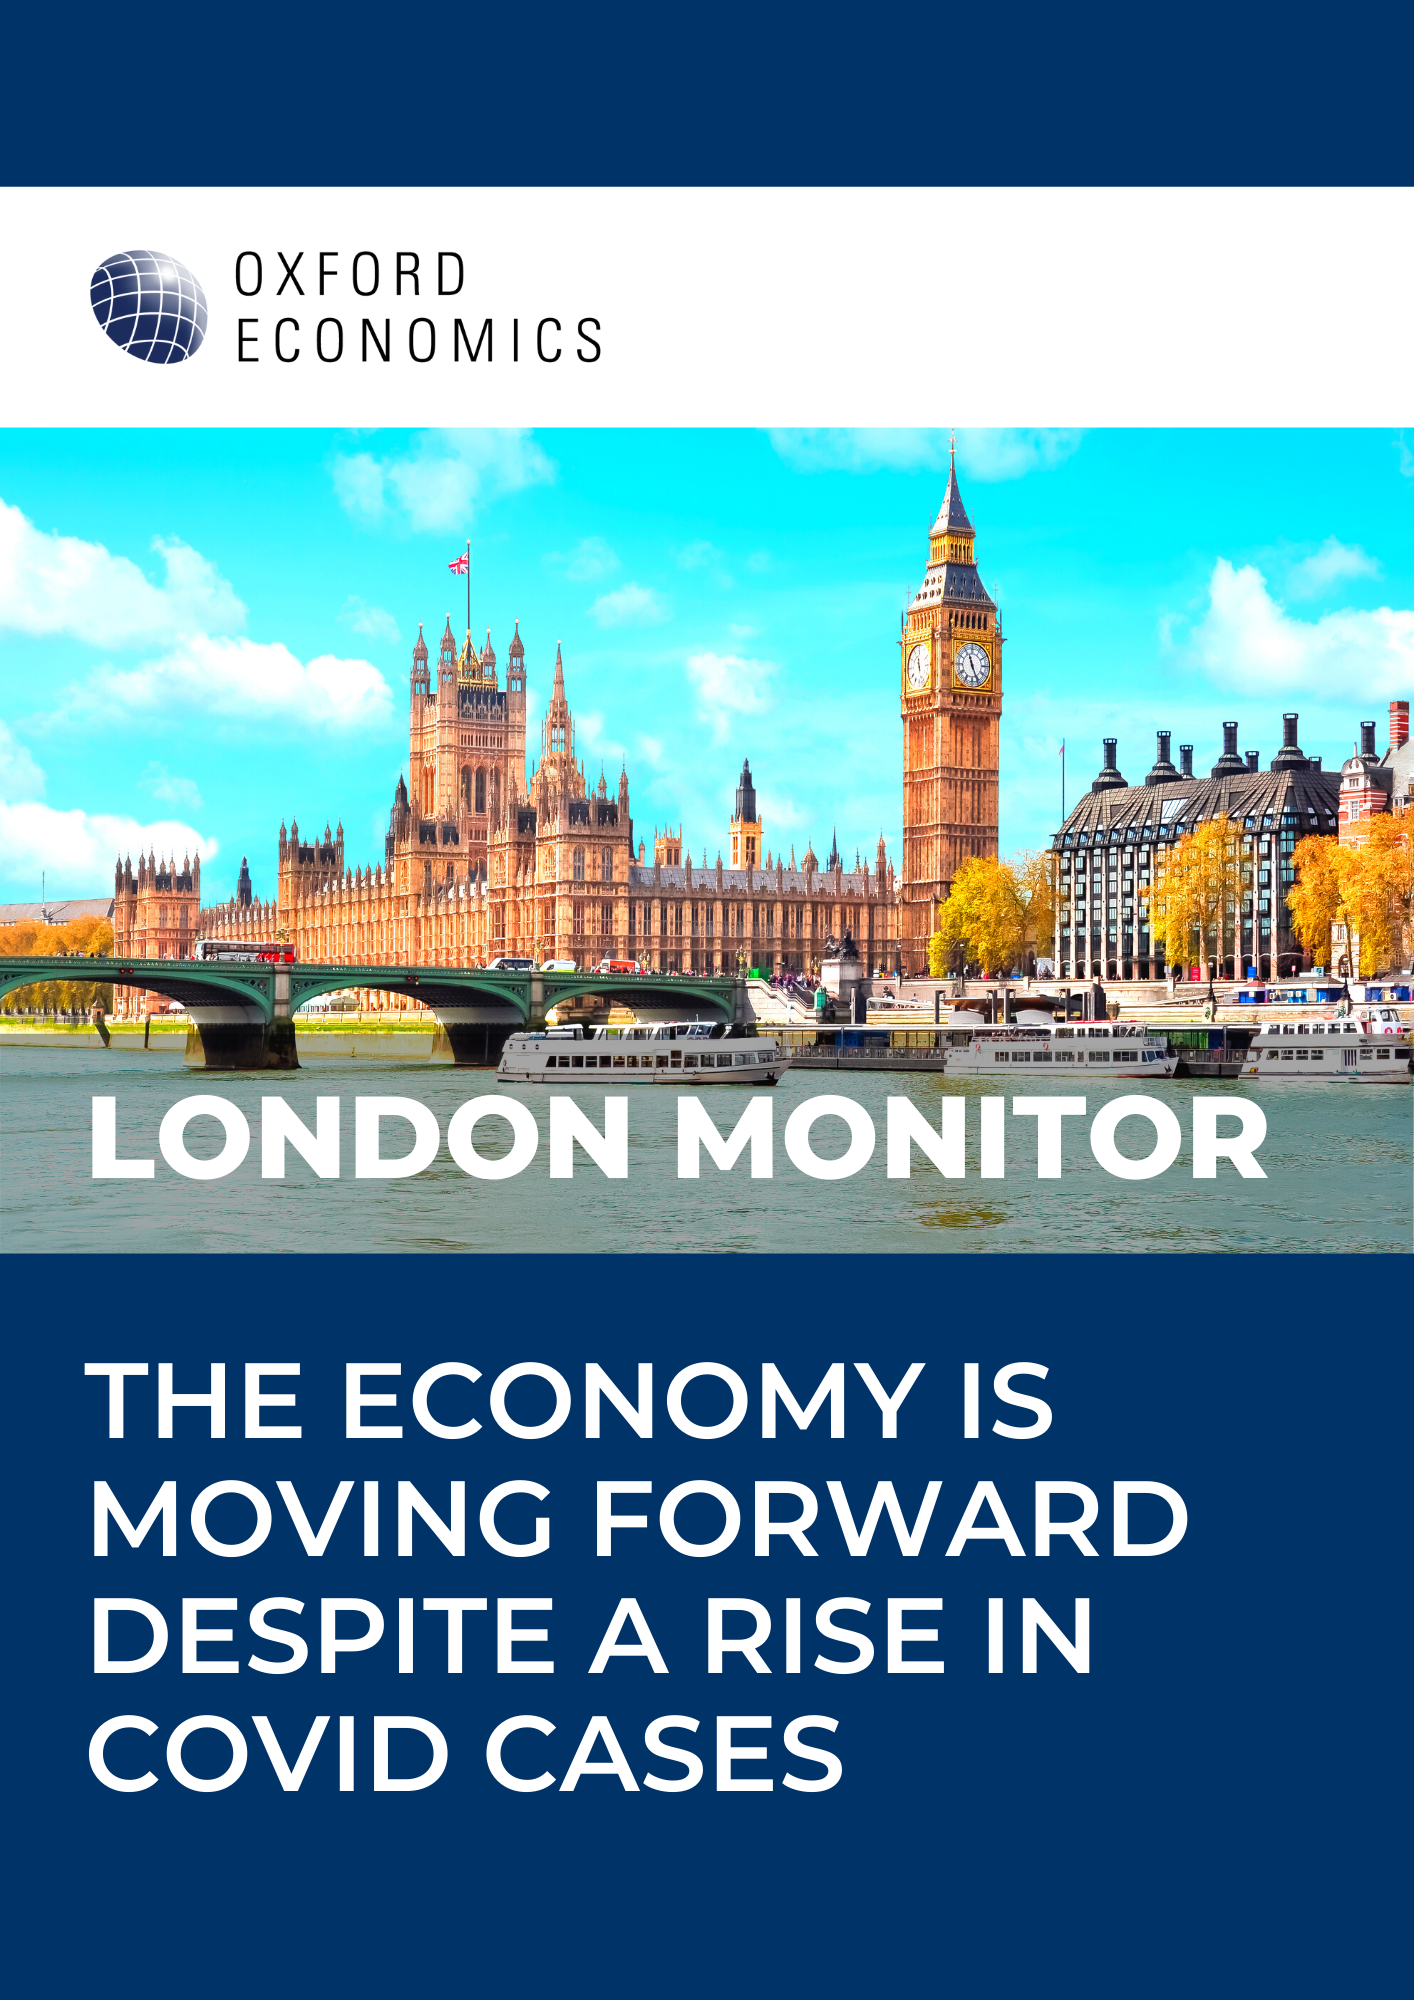 London Monitor | The economy is moving forward despite a rise in Covid cases